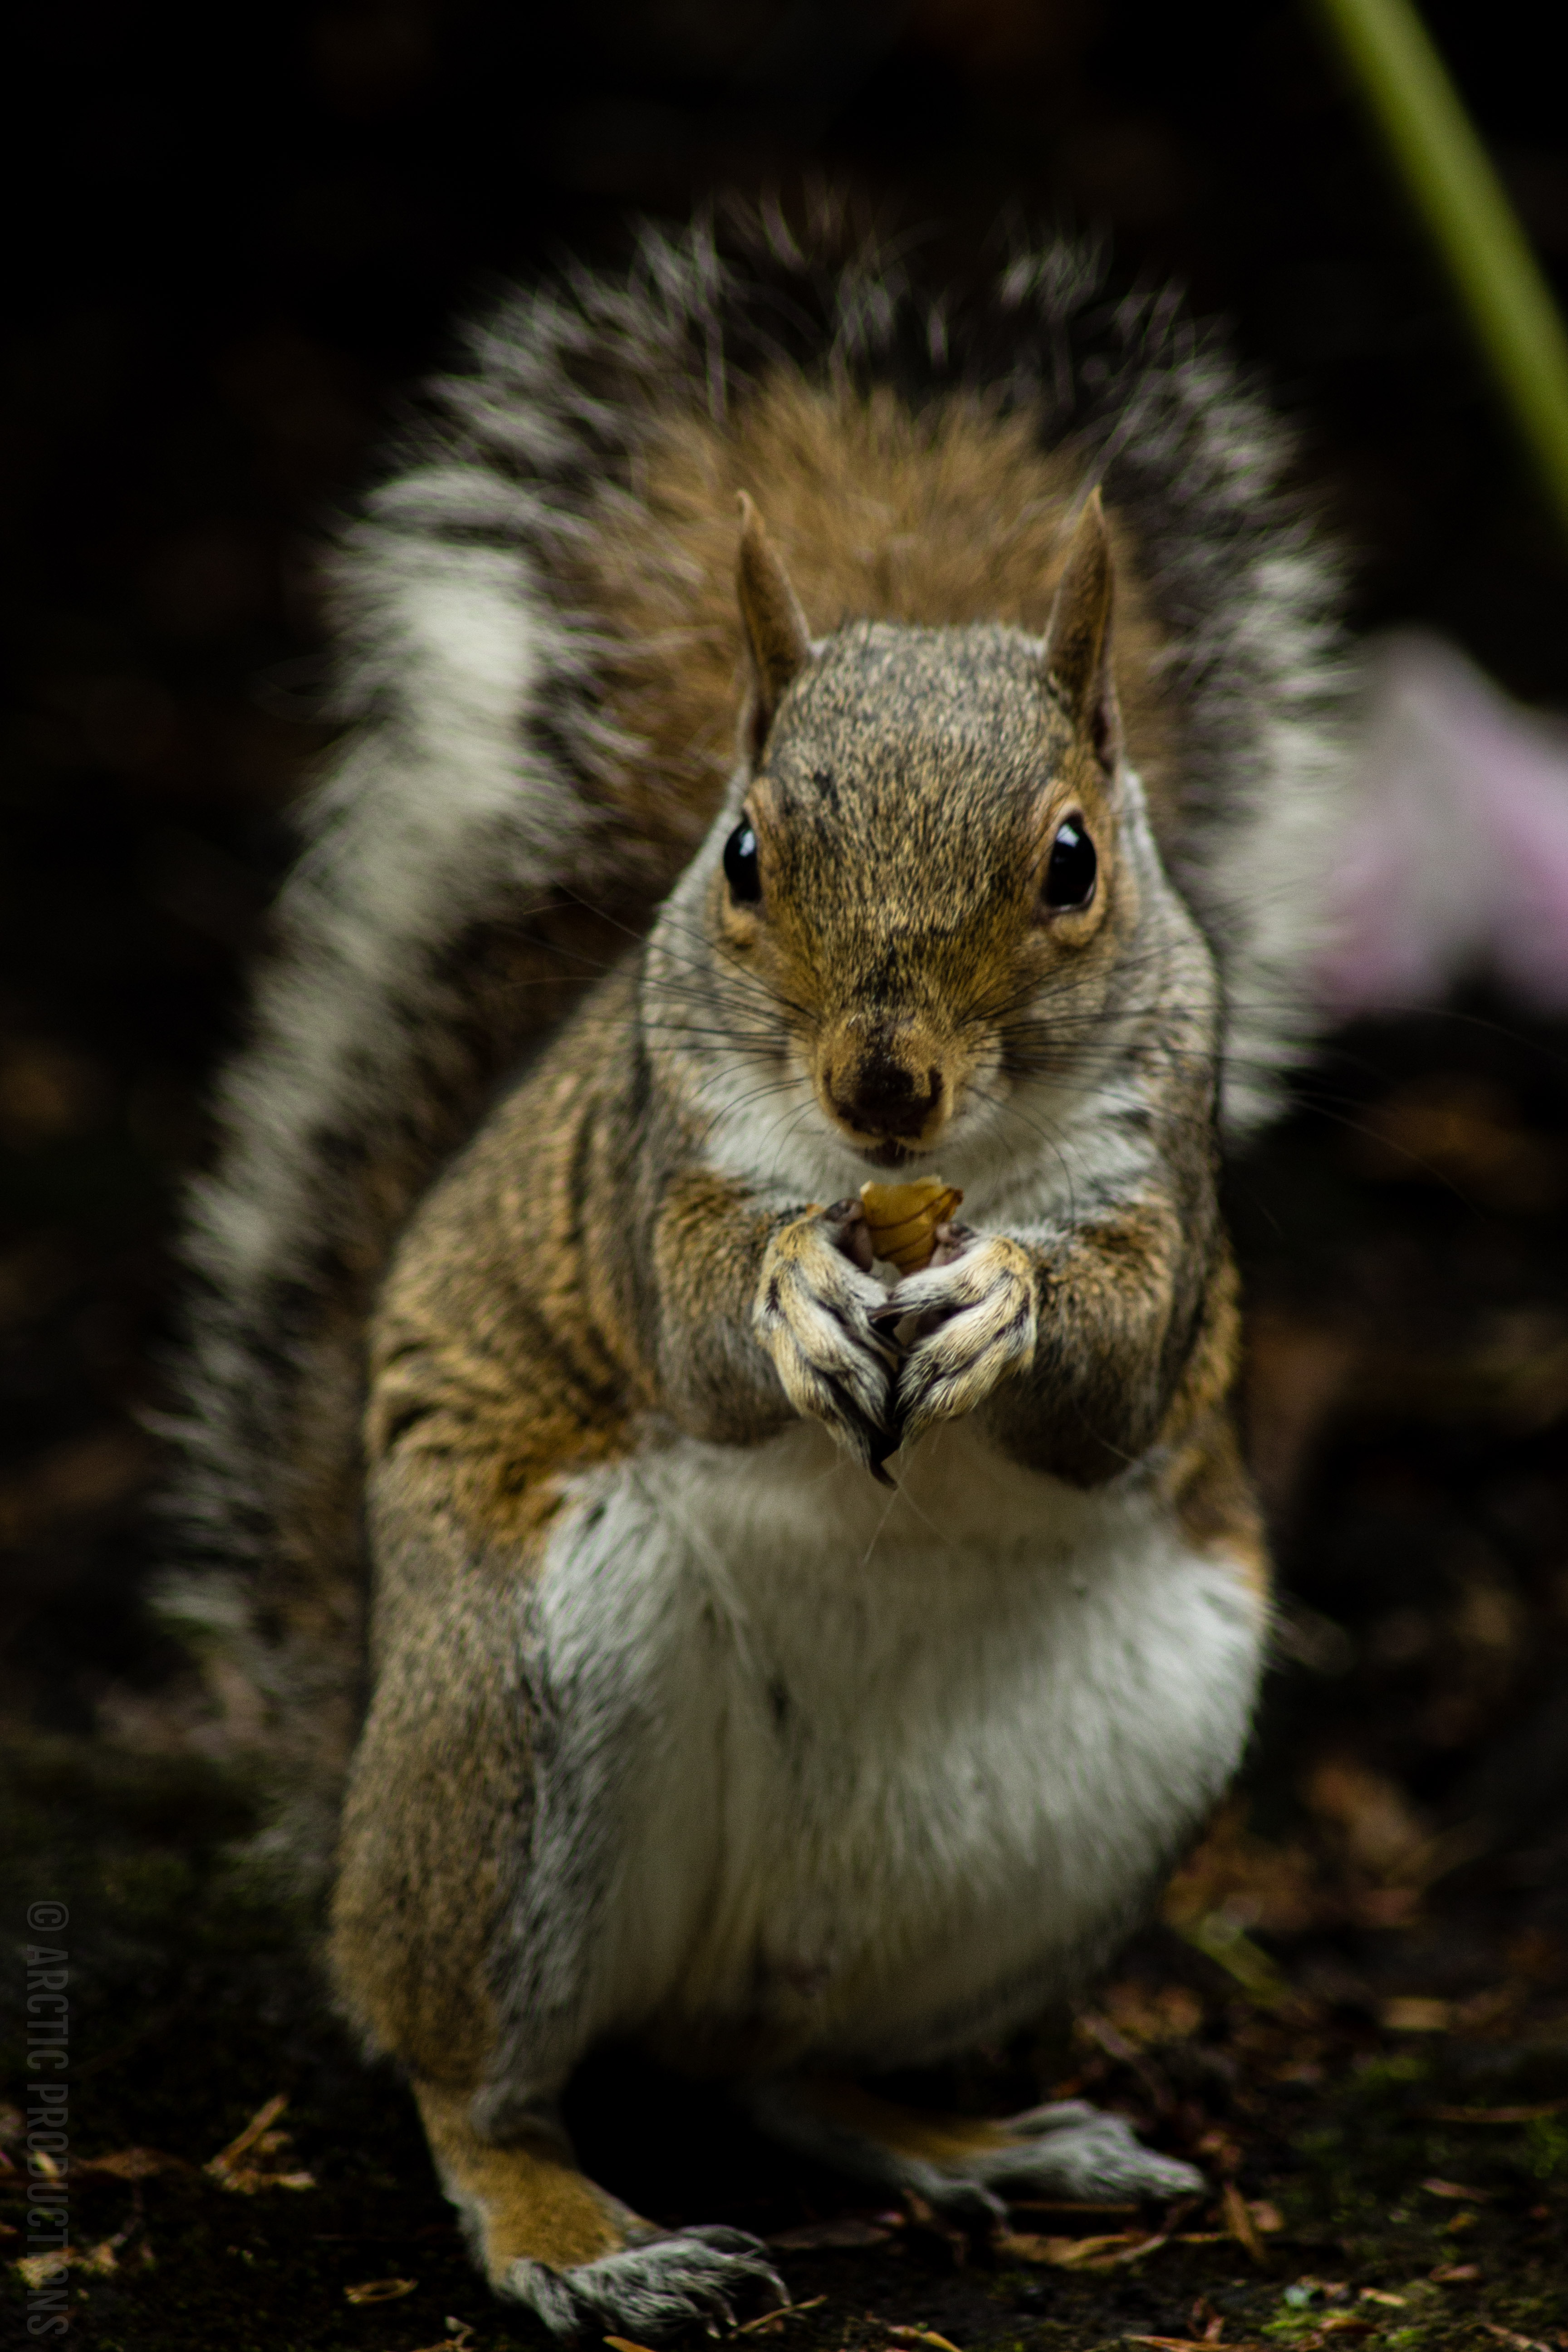 105791 download wallpaper Animals, Squirrel, Rodent, Nice, Sweetheart, Animal screensavers and pictures for free